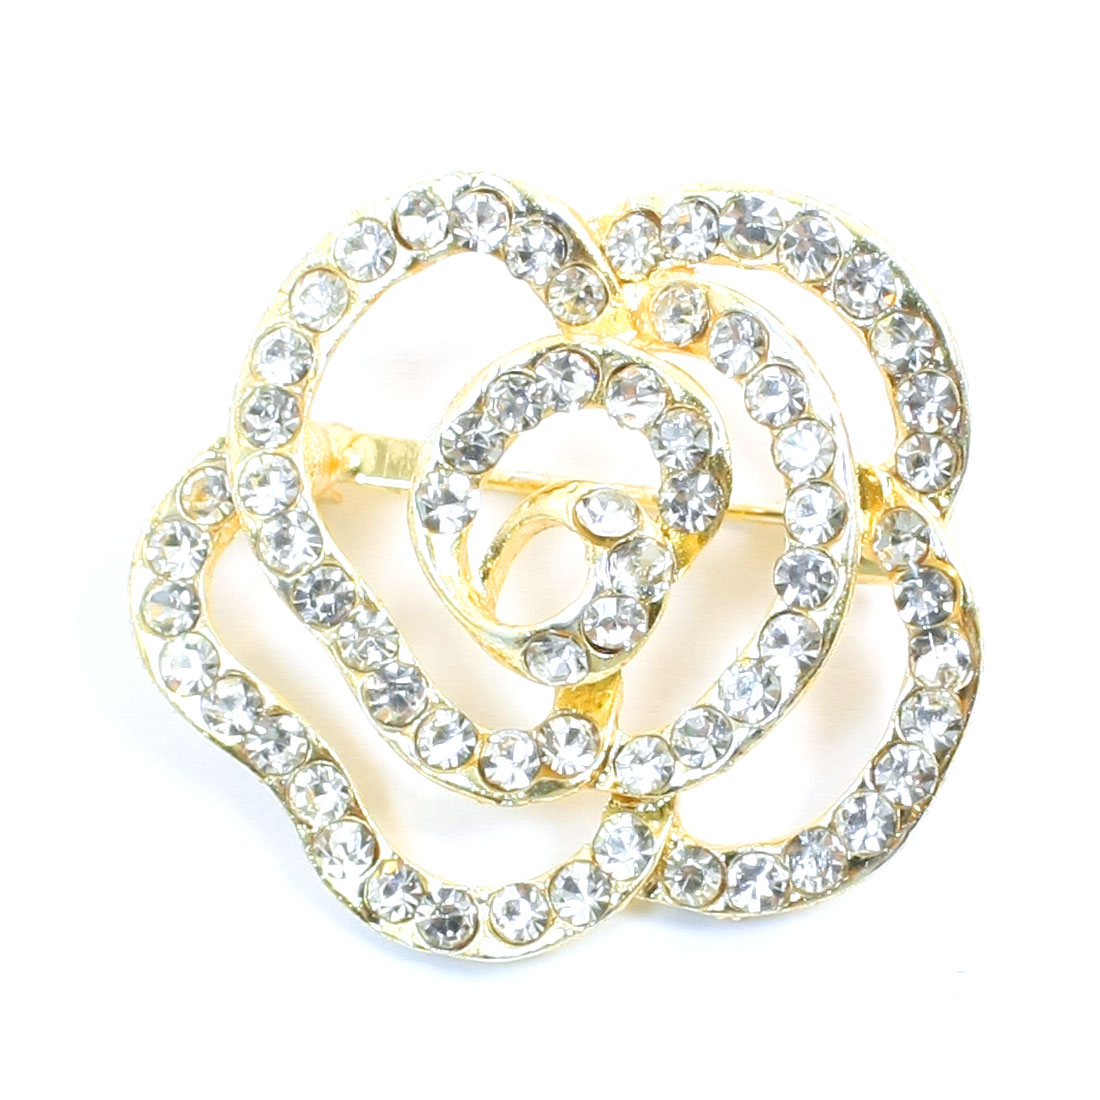 Women Dress Ornament Rhinestone Hollow Out Blossomy Flower Decor Gold Tone Metal Pin Brooch Broach Breastpin